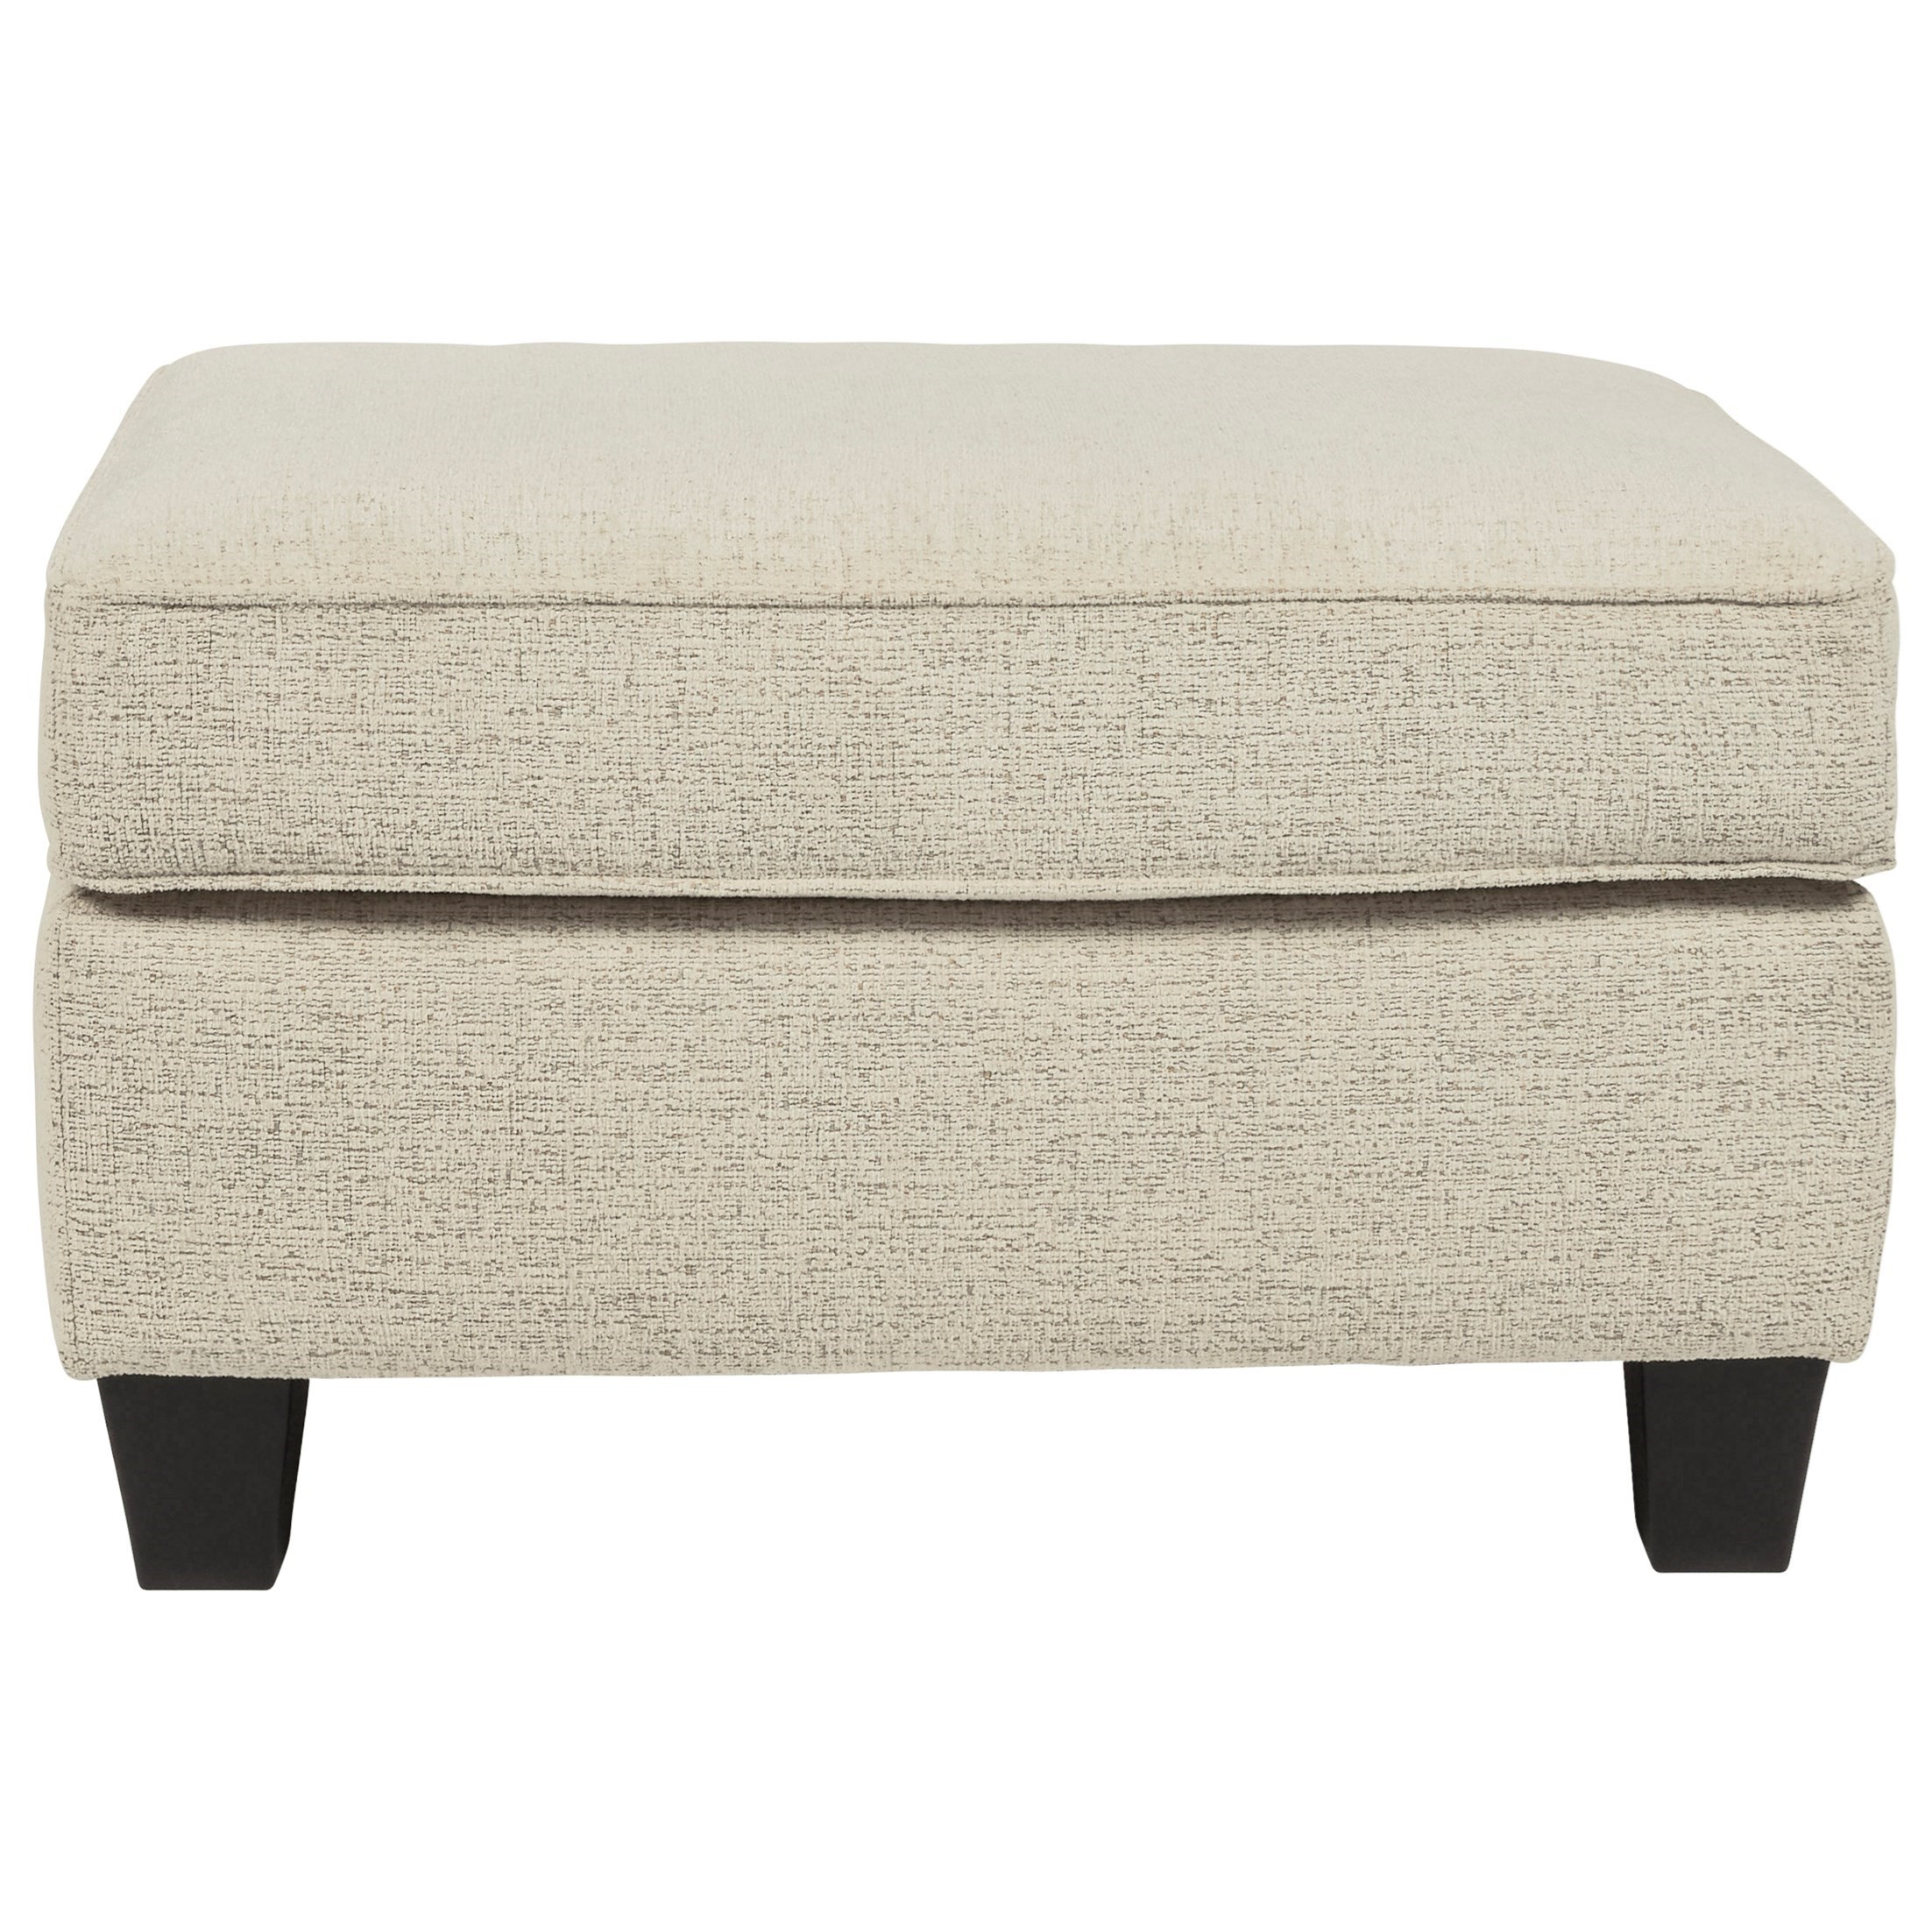 Abinger Ottoman by Signature Design by Ashley at Factory Direct Furniture